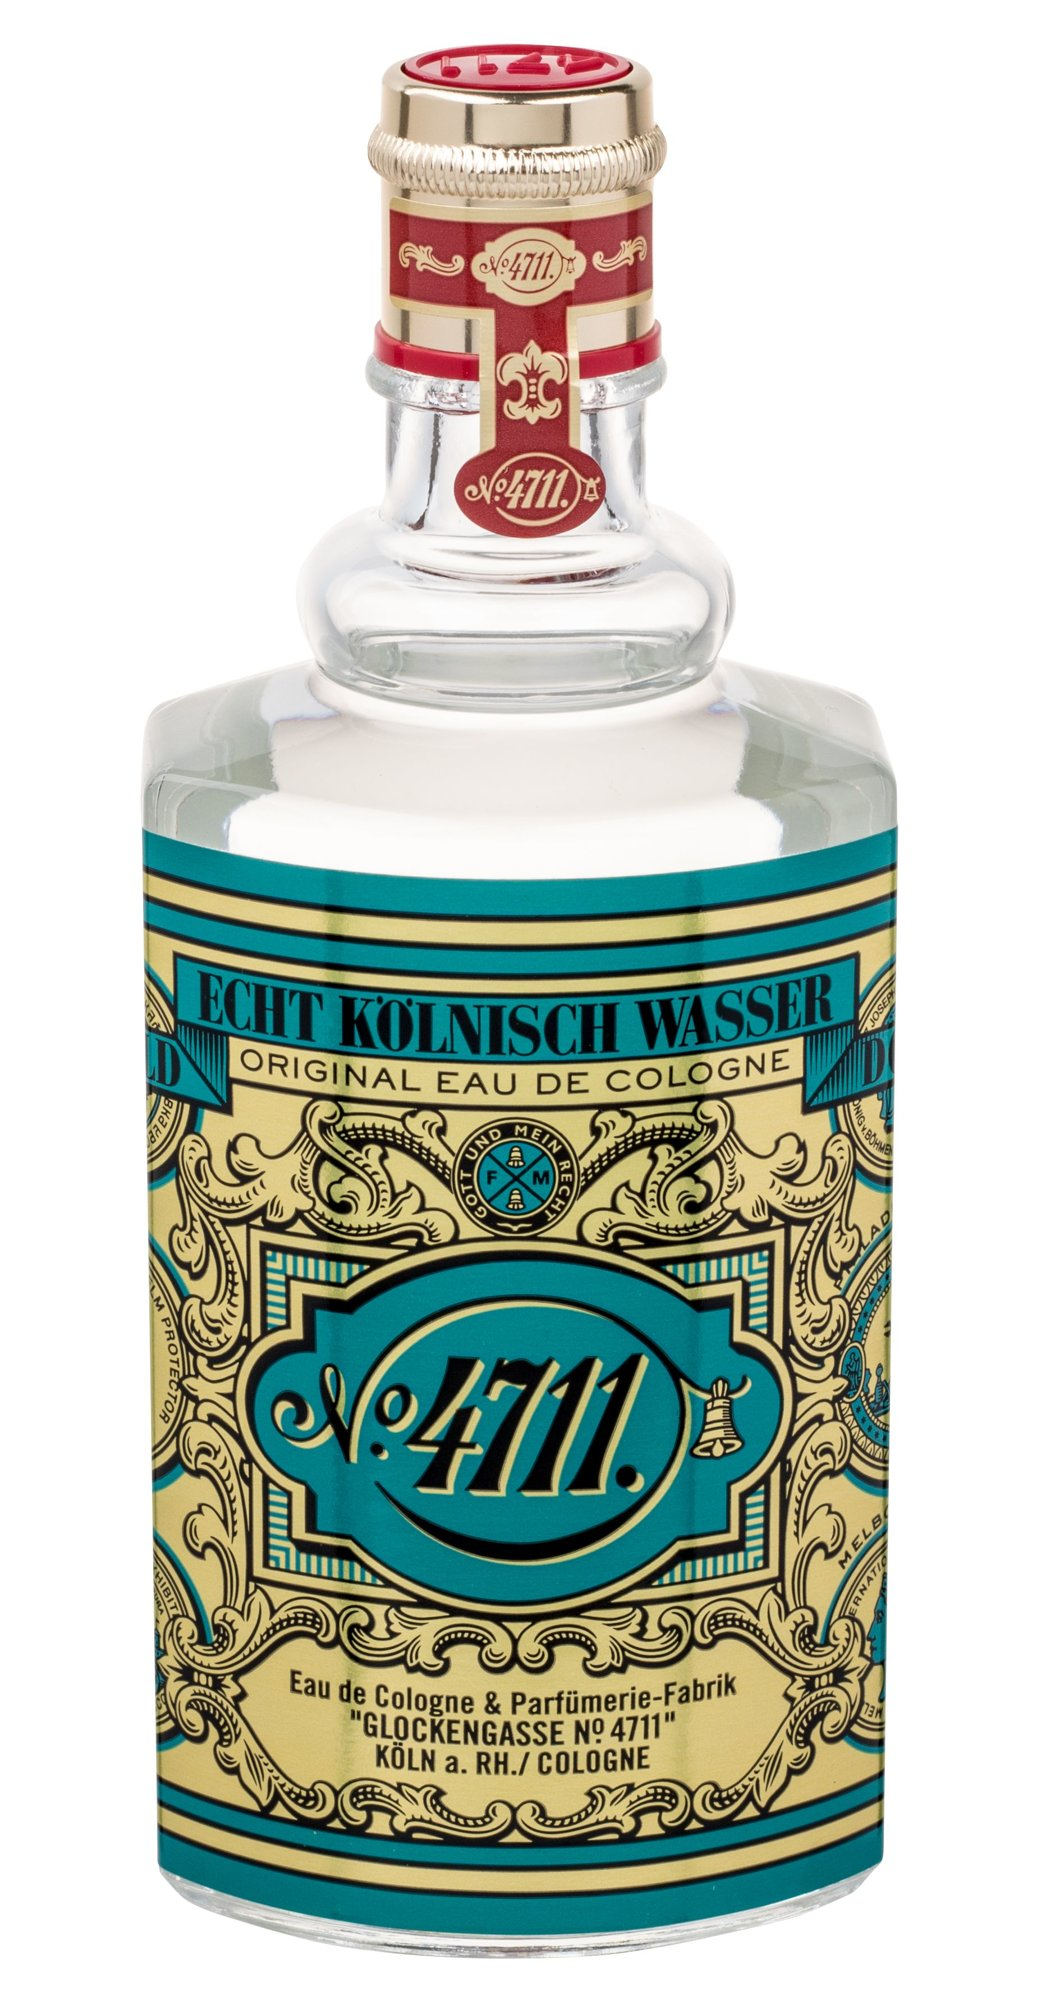 4711 4711 Original Cologne 200ml